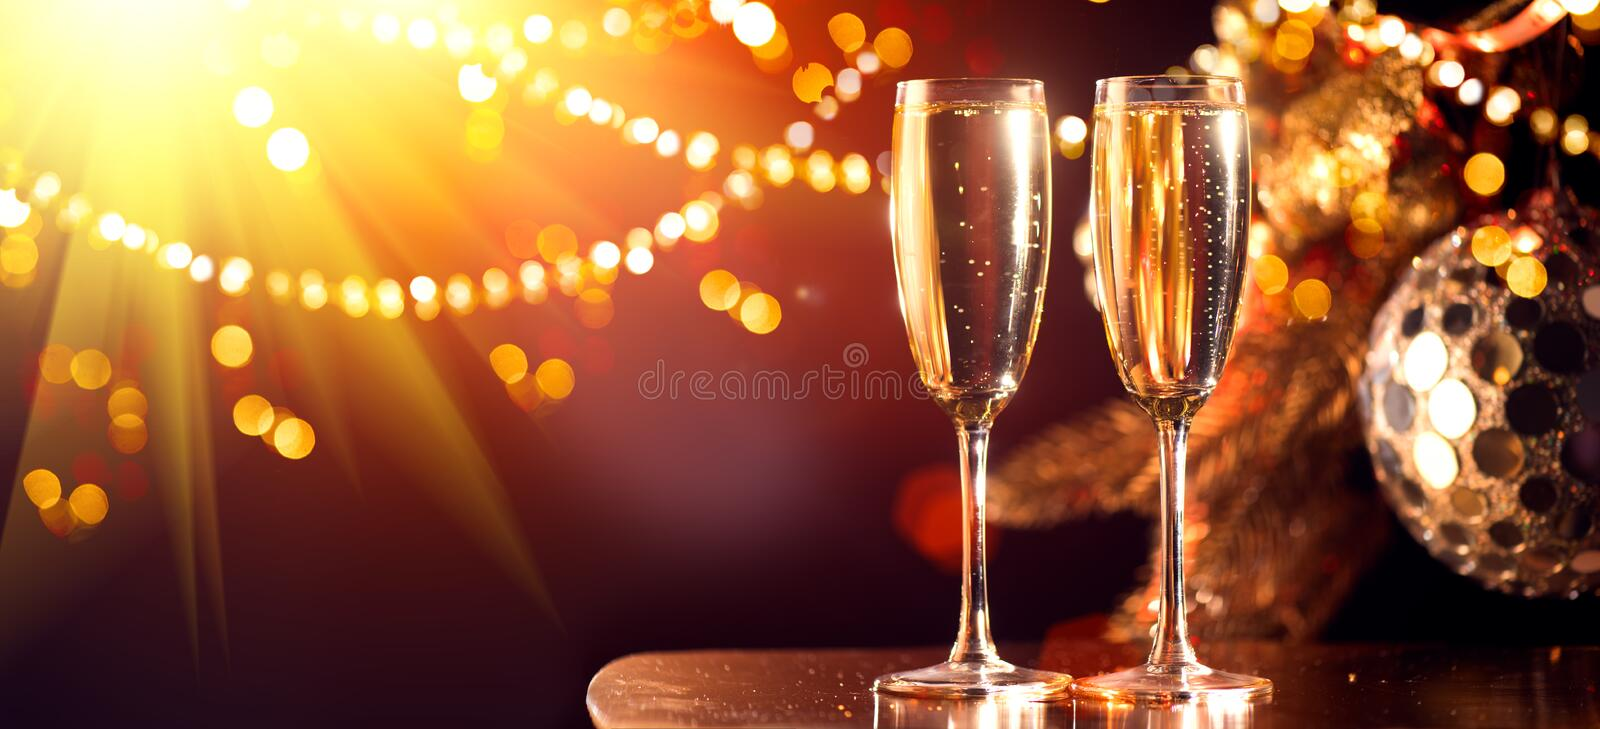 Holiday Champagne Flute over Golden glow background. Christmas and New Year celebration. Two Flutes with Sparkling Wine royalty free stock images